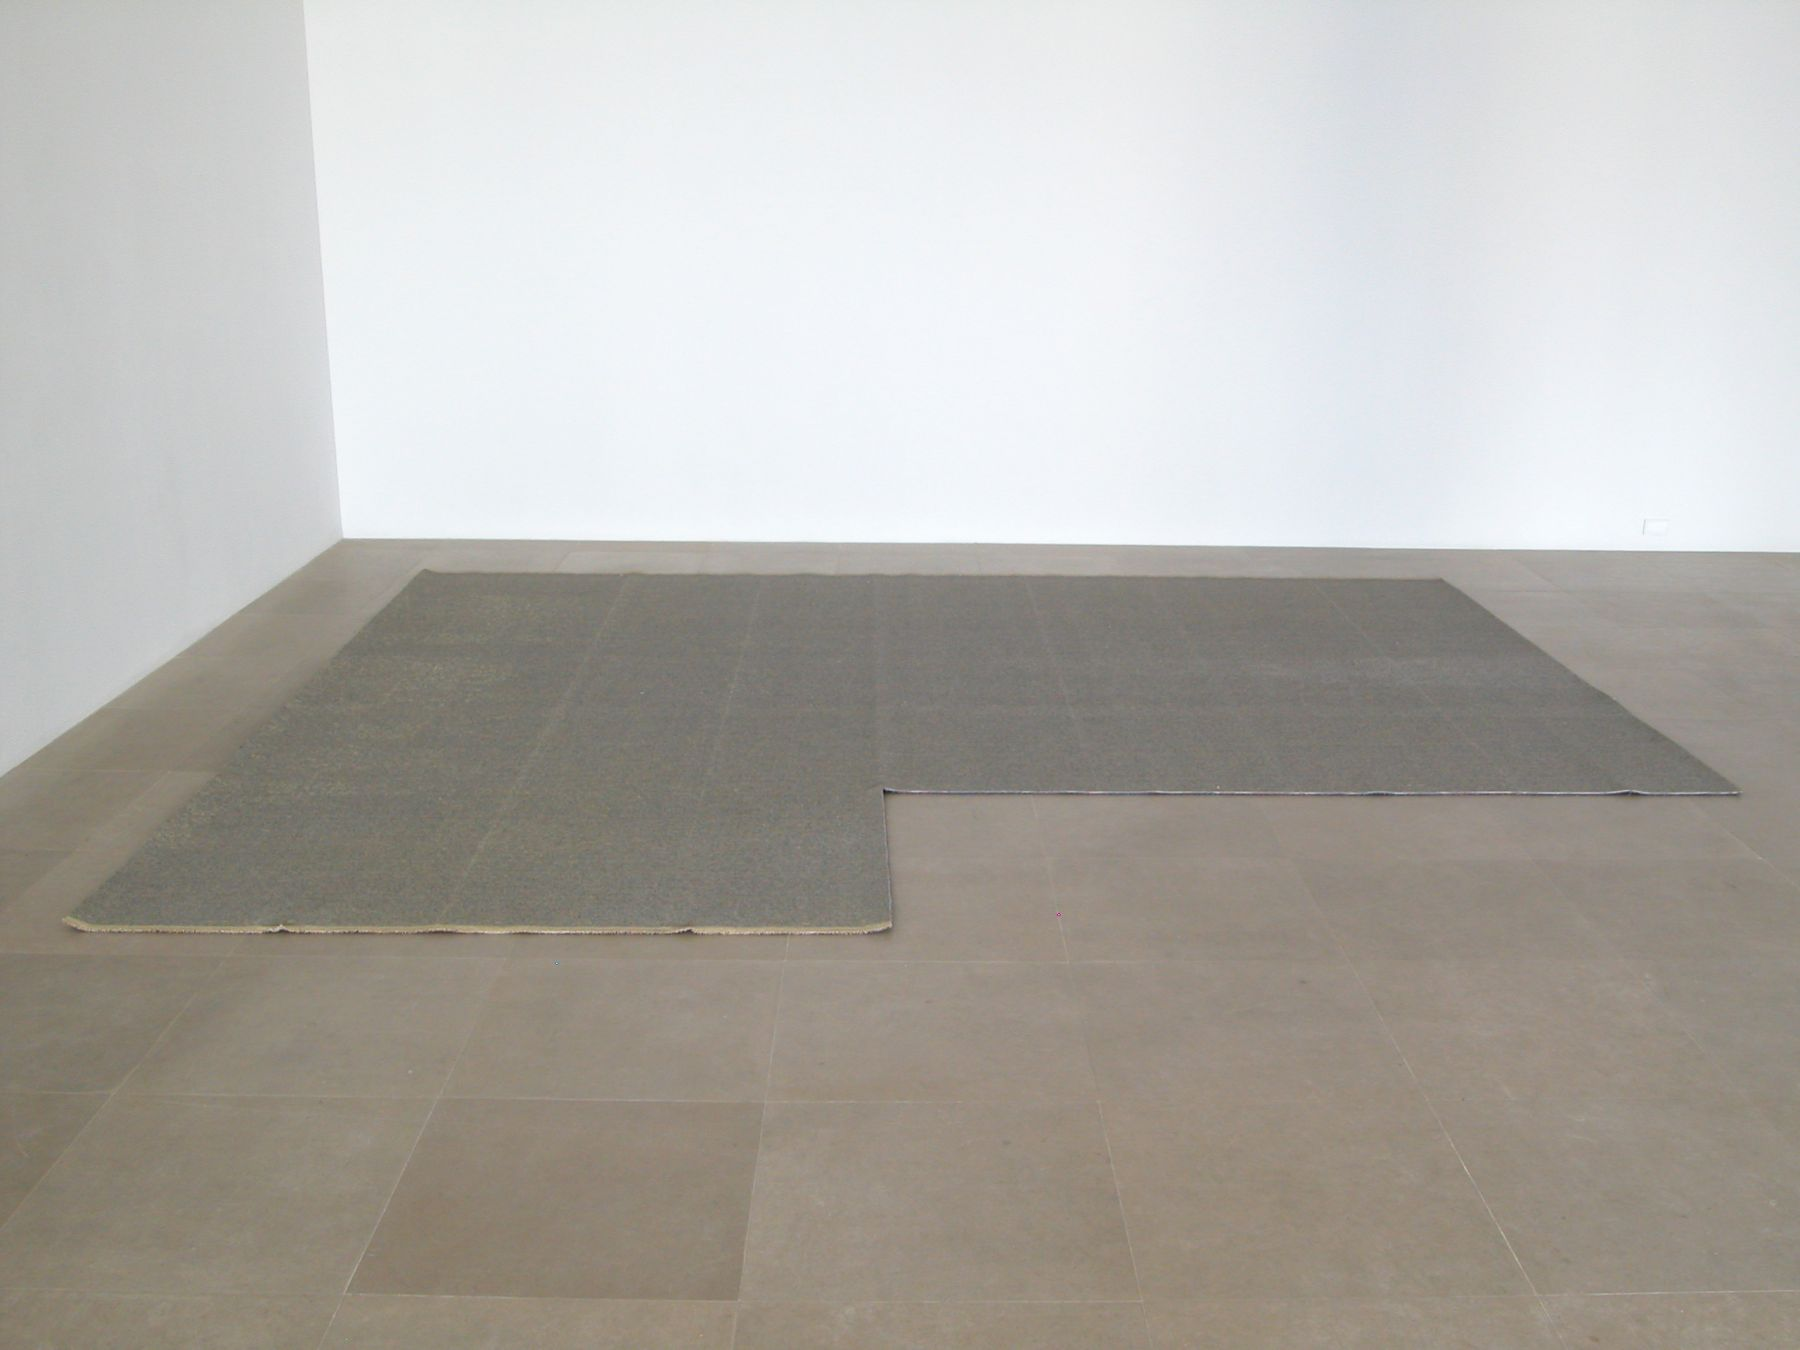 Of Equal Strength, 2008, Carpet, 169.5 x 145.5 x .25 inches